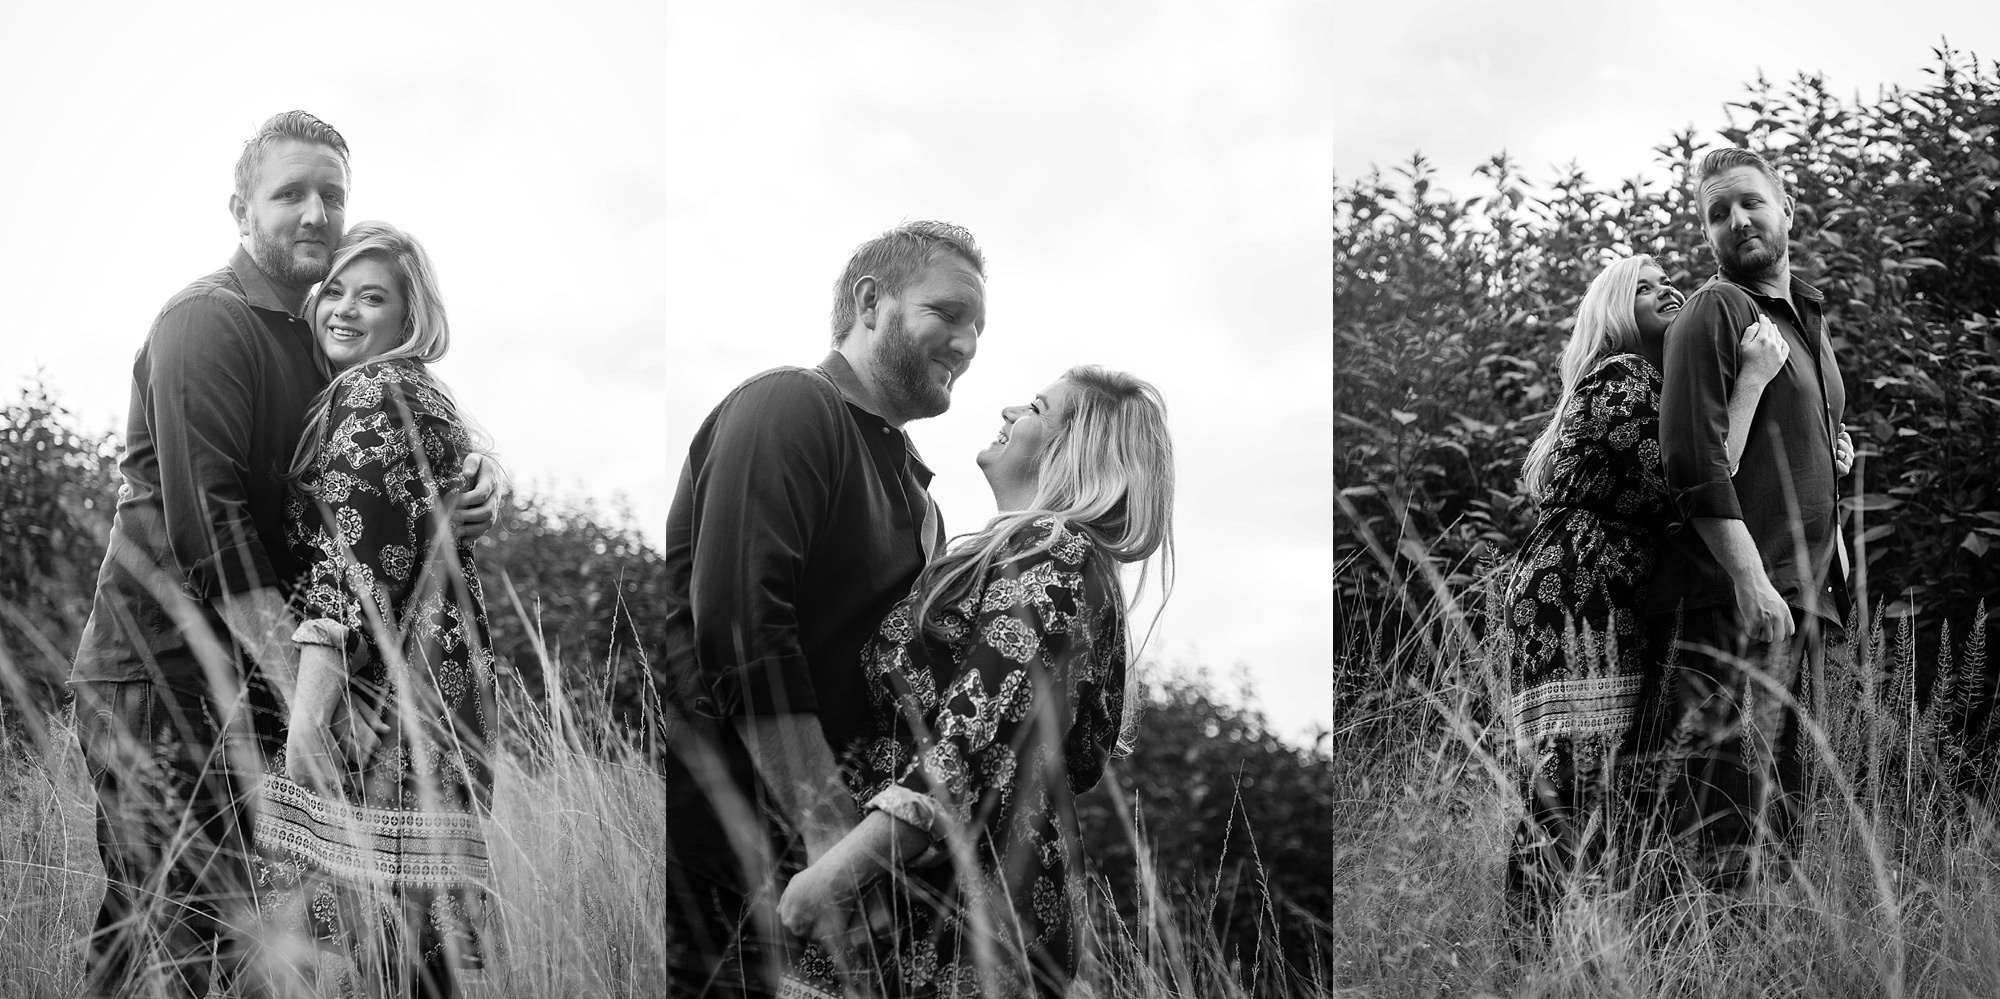 Wynandvandermerwe david irene engagement shoot nature gauteng3.jpg